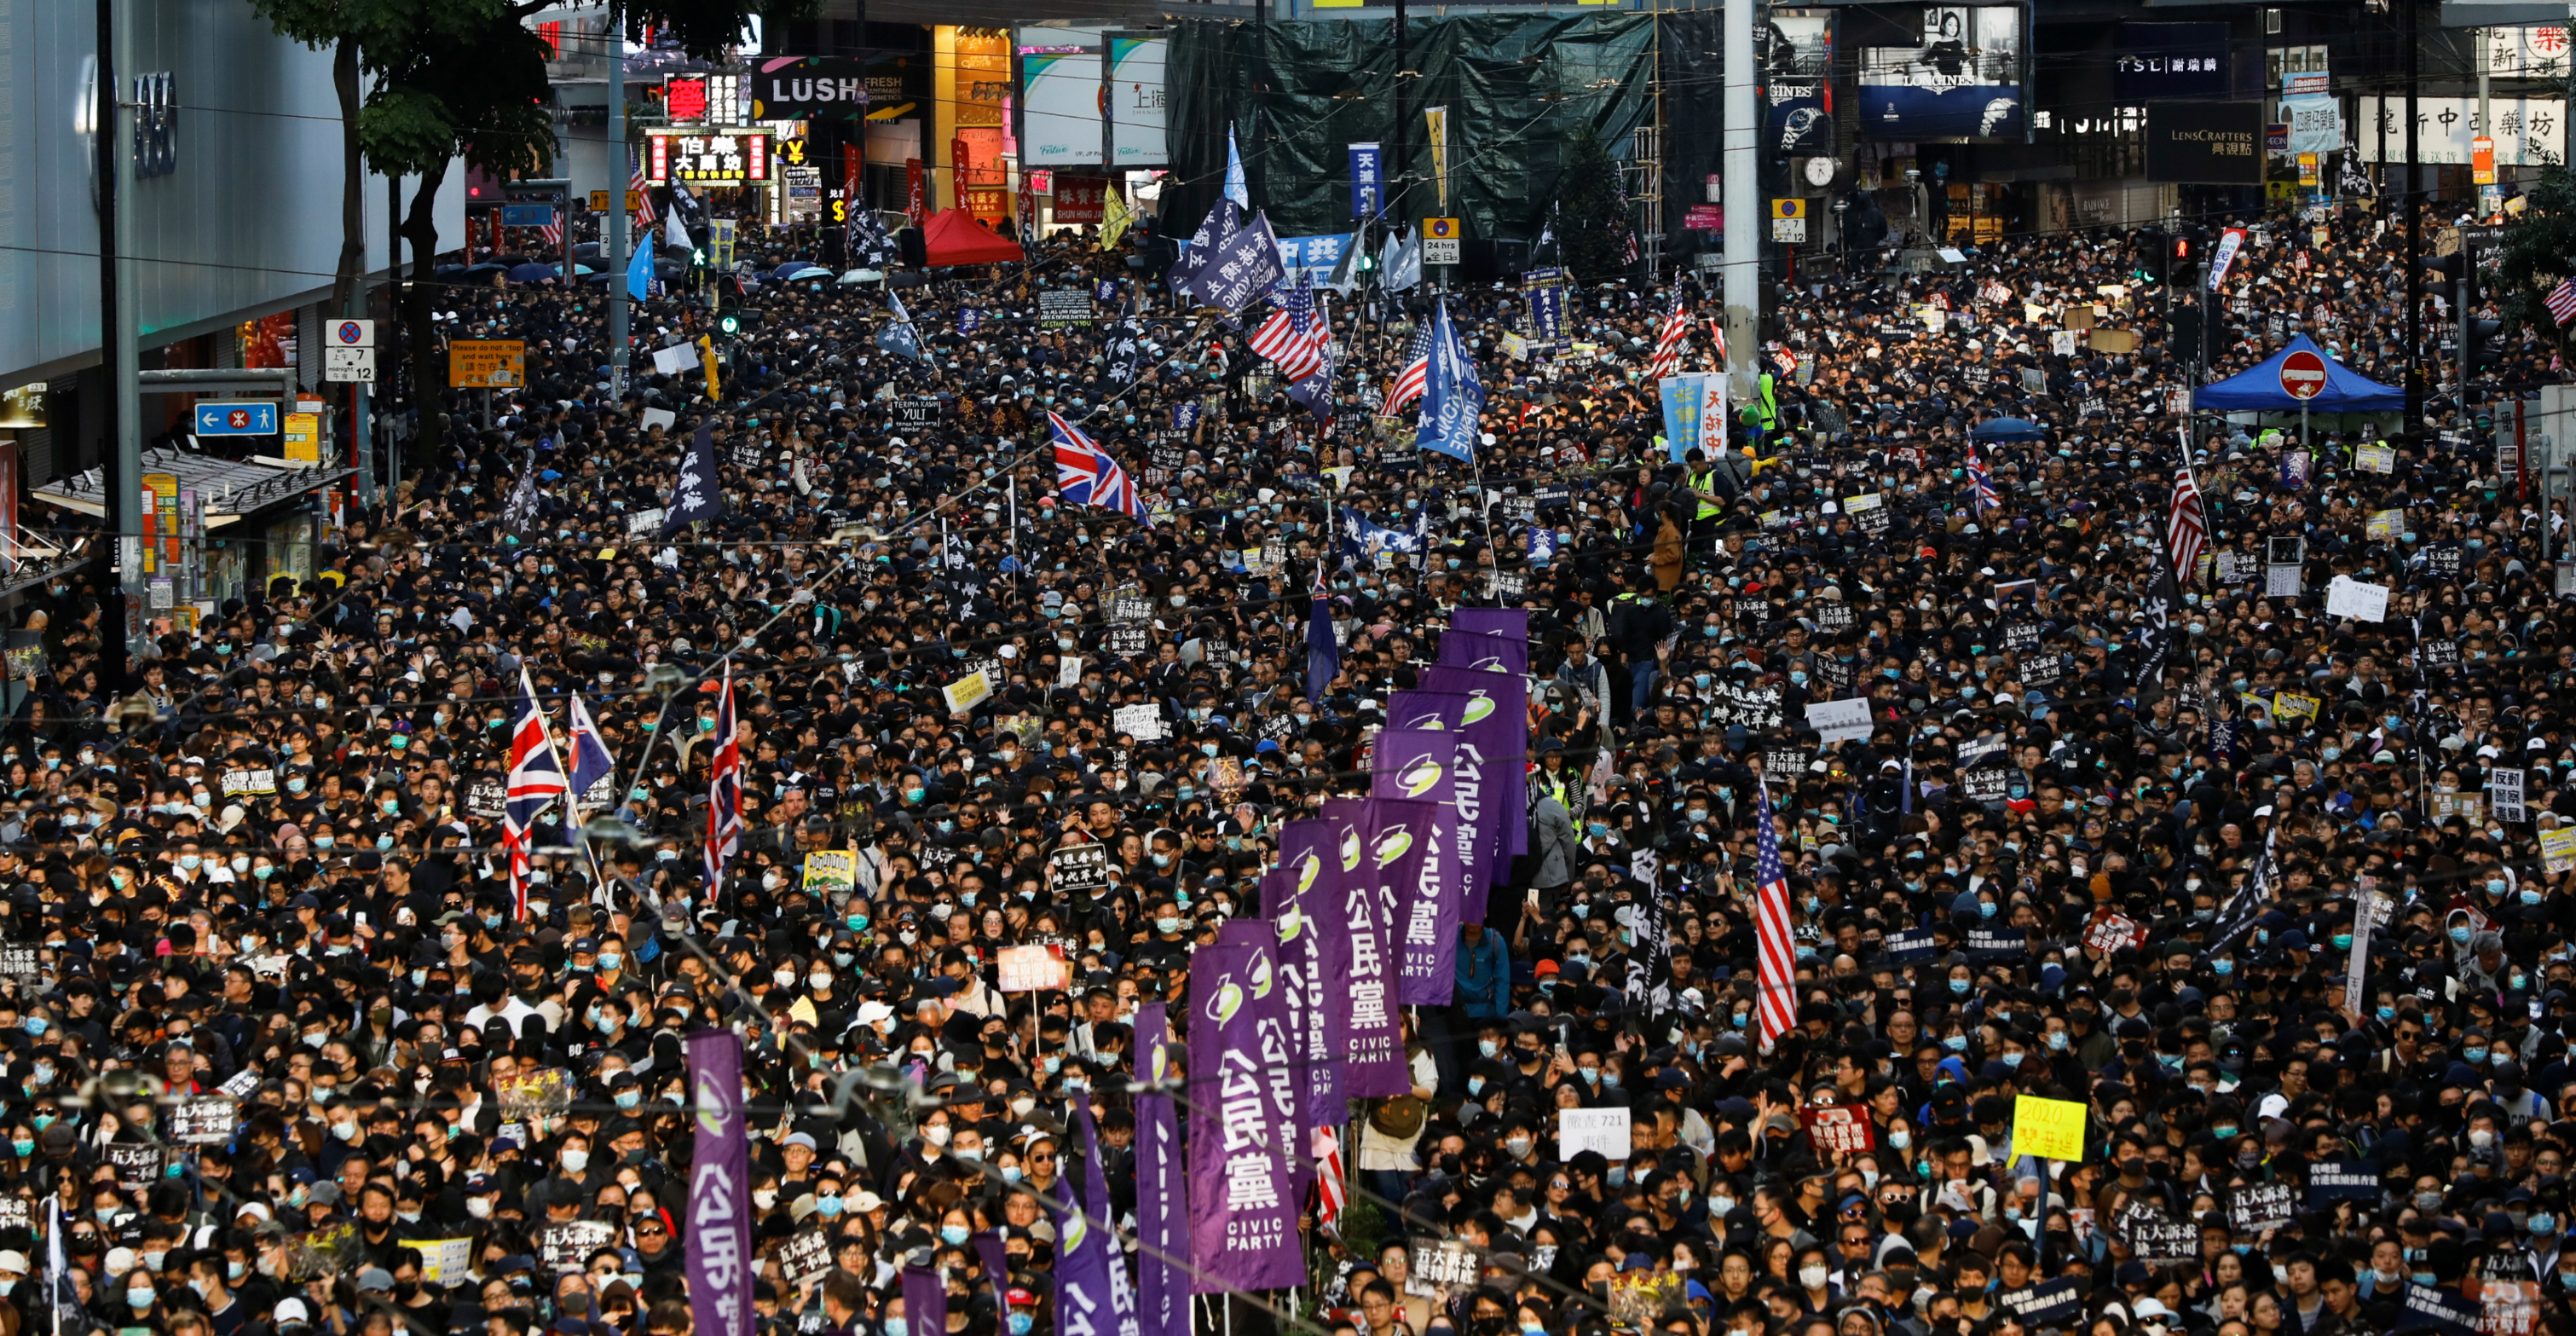 The Civil Human Rights Front estimated that about 800,000 people joined the march on Sunday. Photo: Reuters